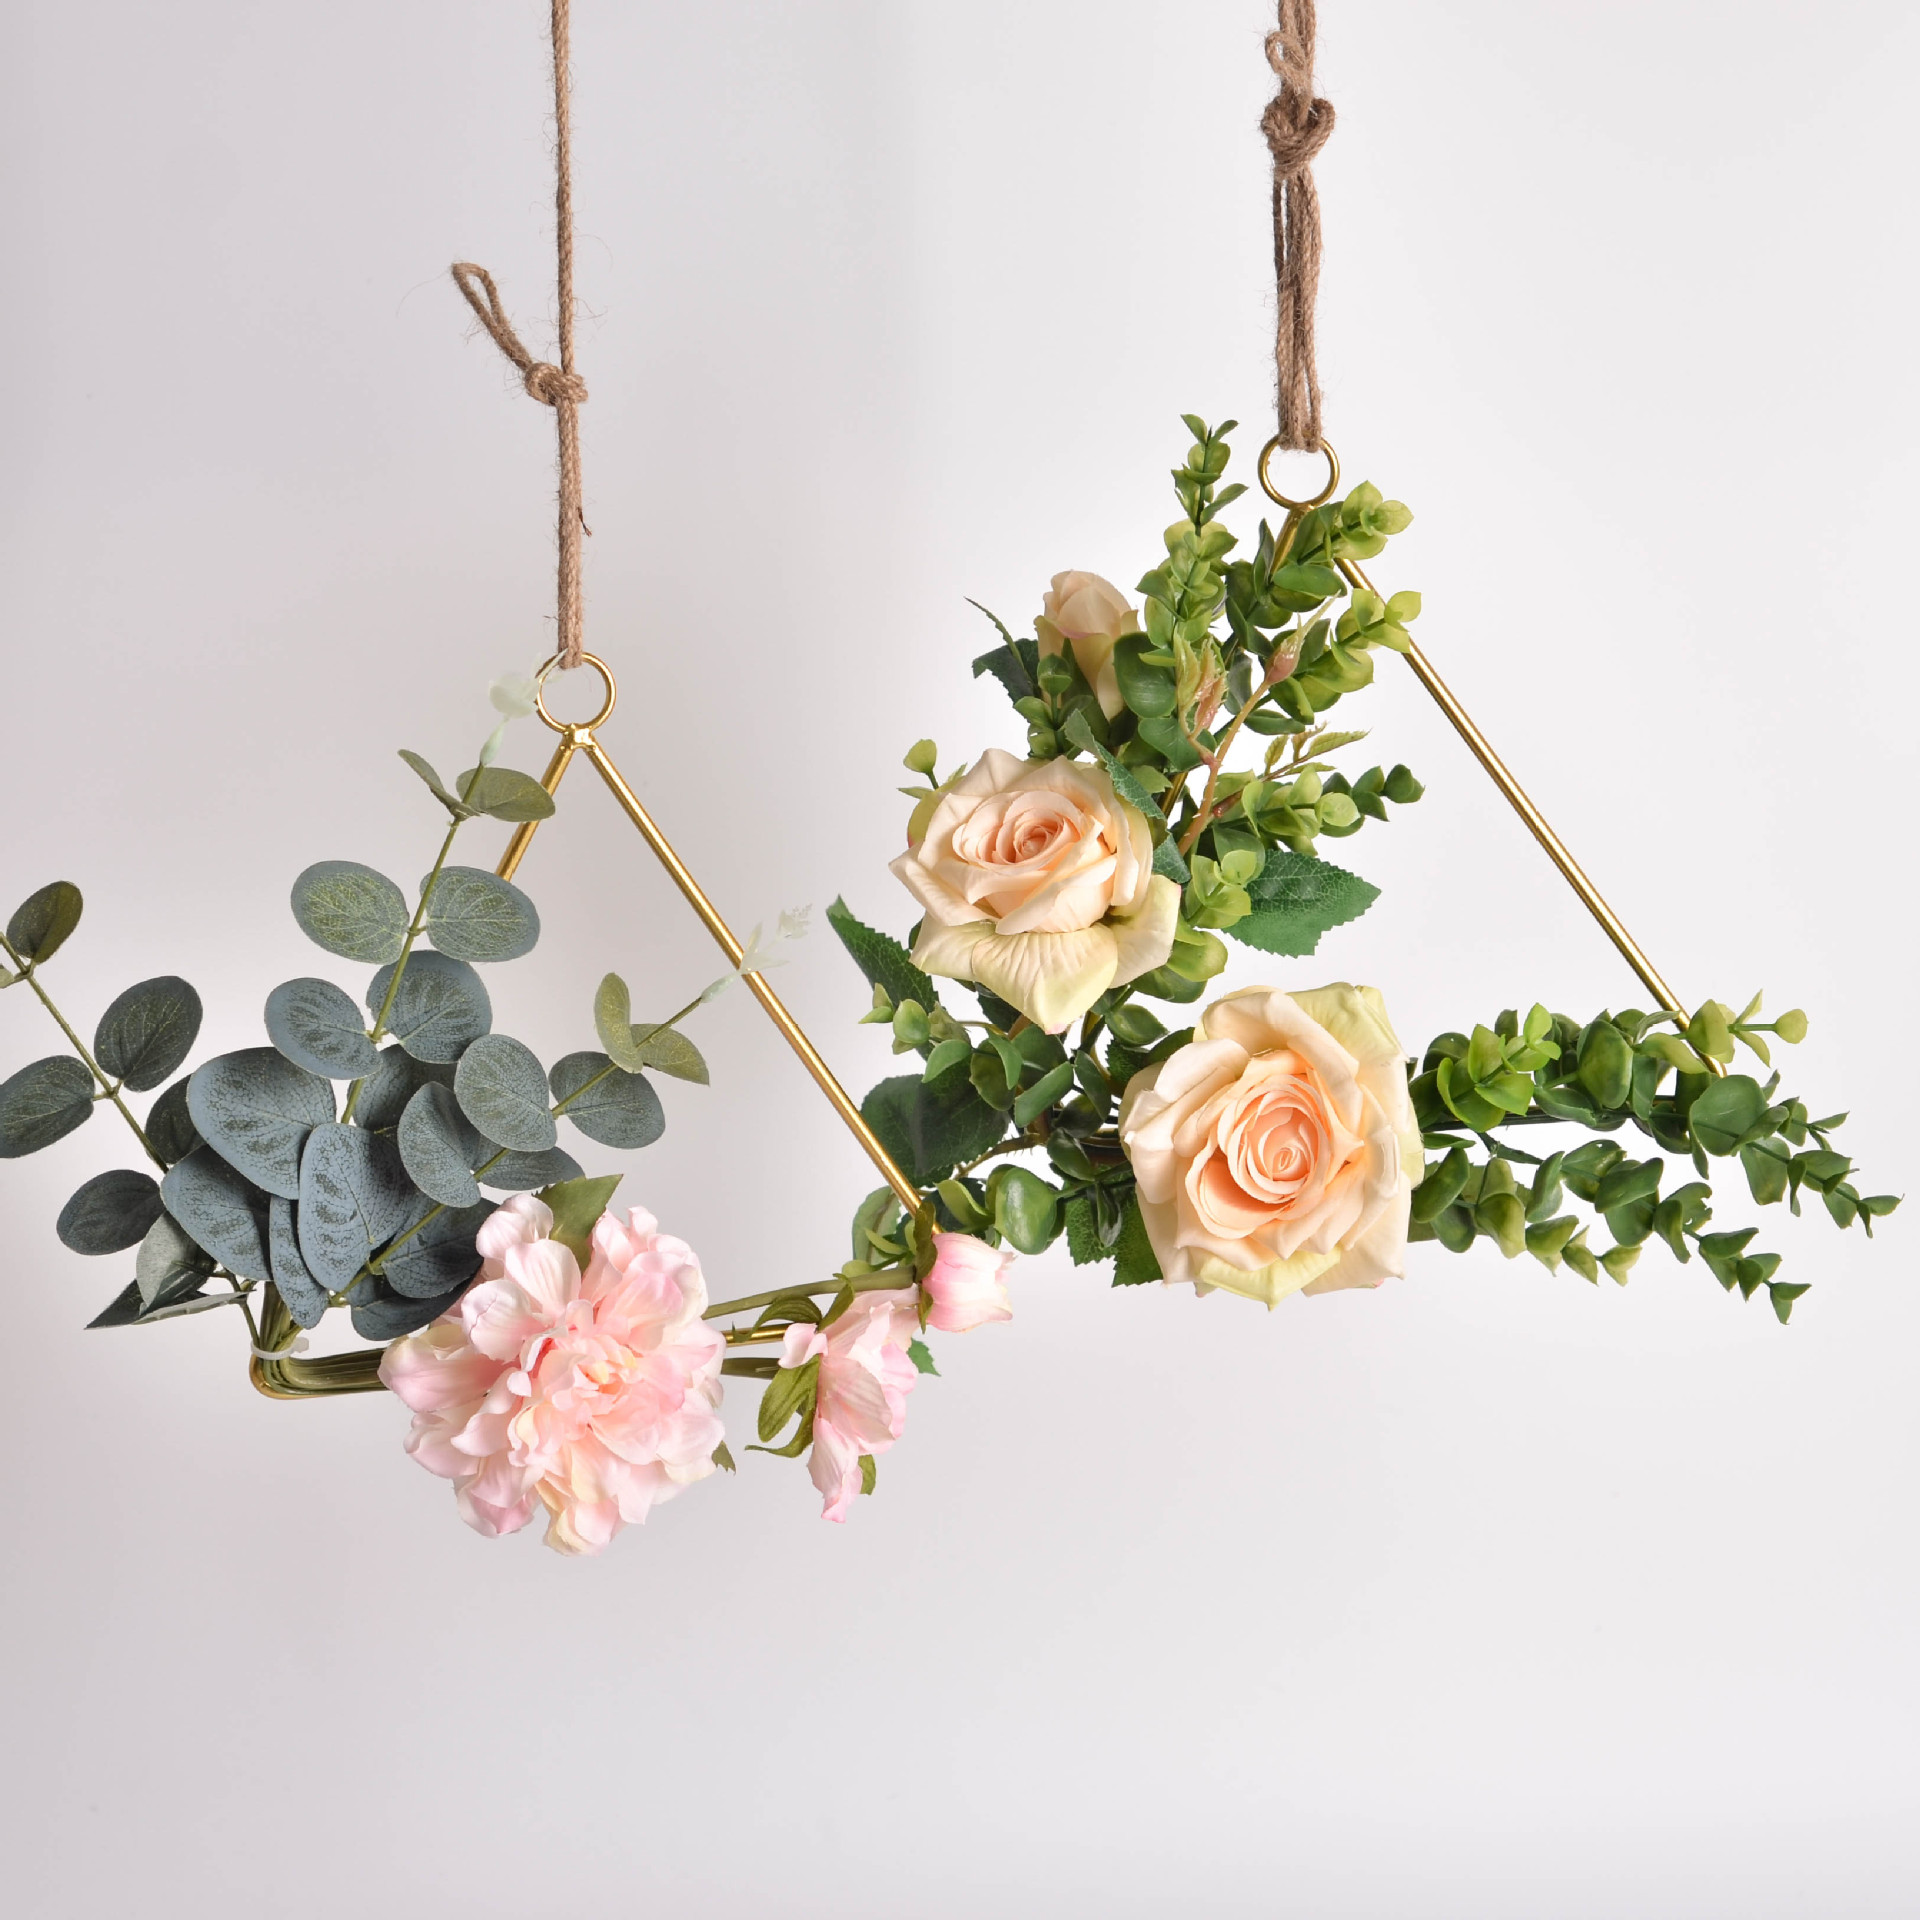 Cilected Iron Floral Hoop Wreath Artificial Flowers Wall Hanging Wreaths Decoration For Wedding Home Party Door Decoration